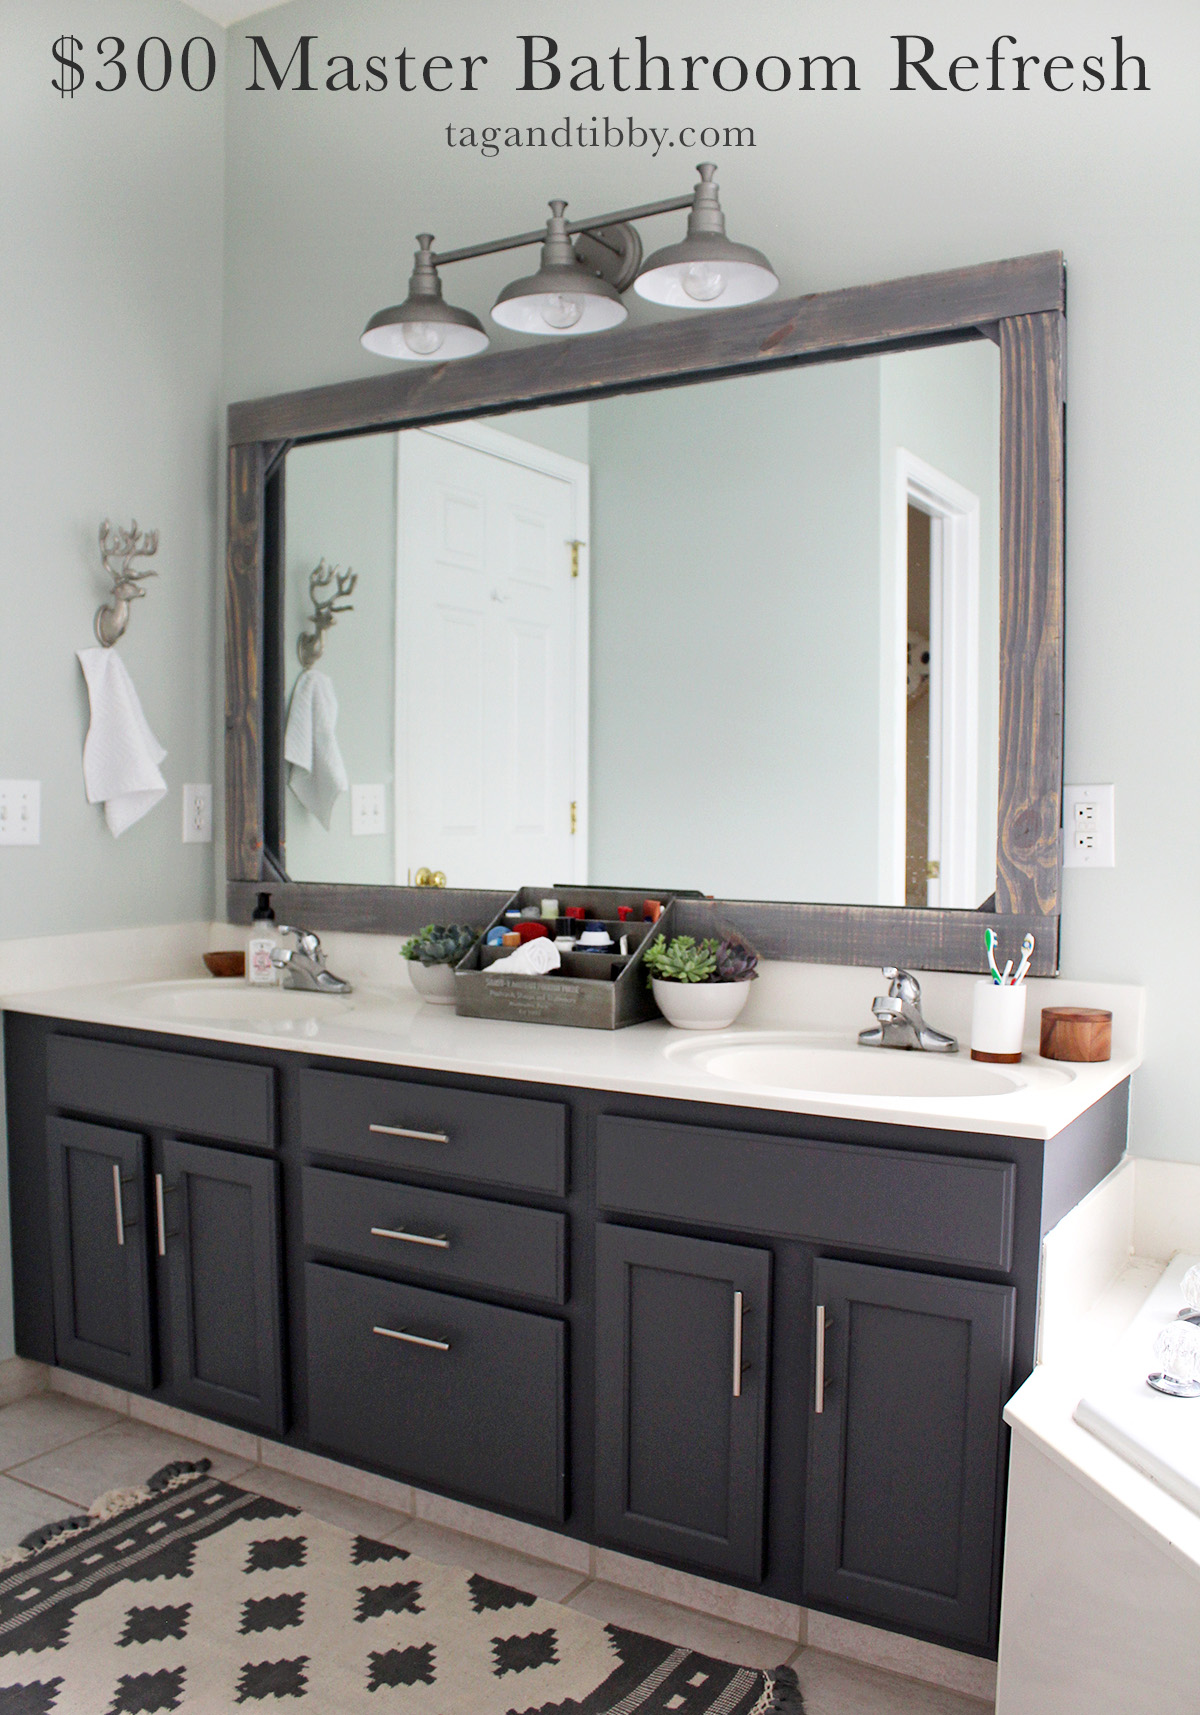 learn how to update your master bathroom on a $300 budget with practical tips #masterbathroom #budgetremodel #DIYproject #seasalt